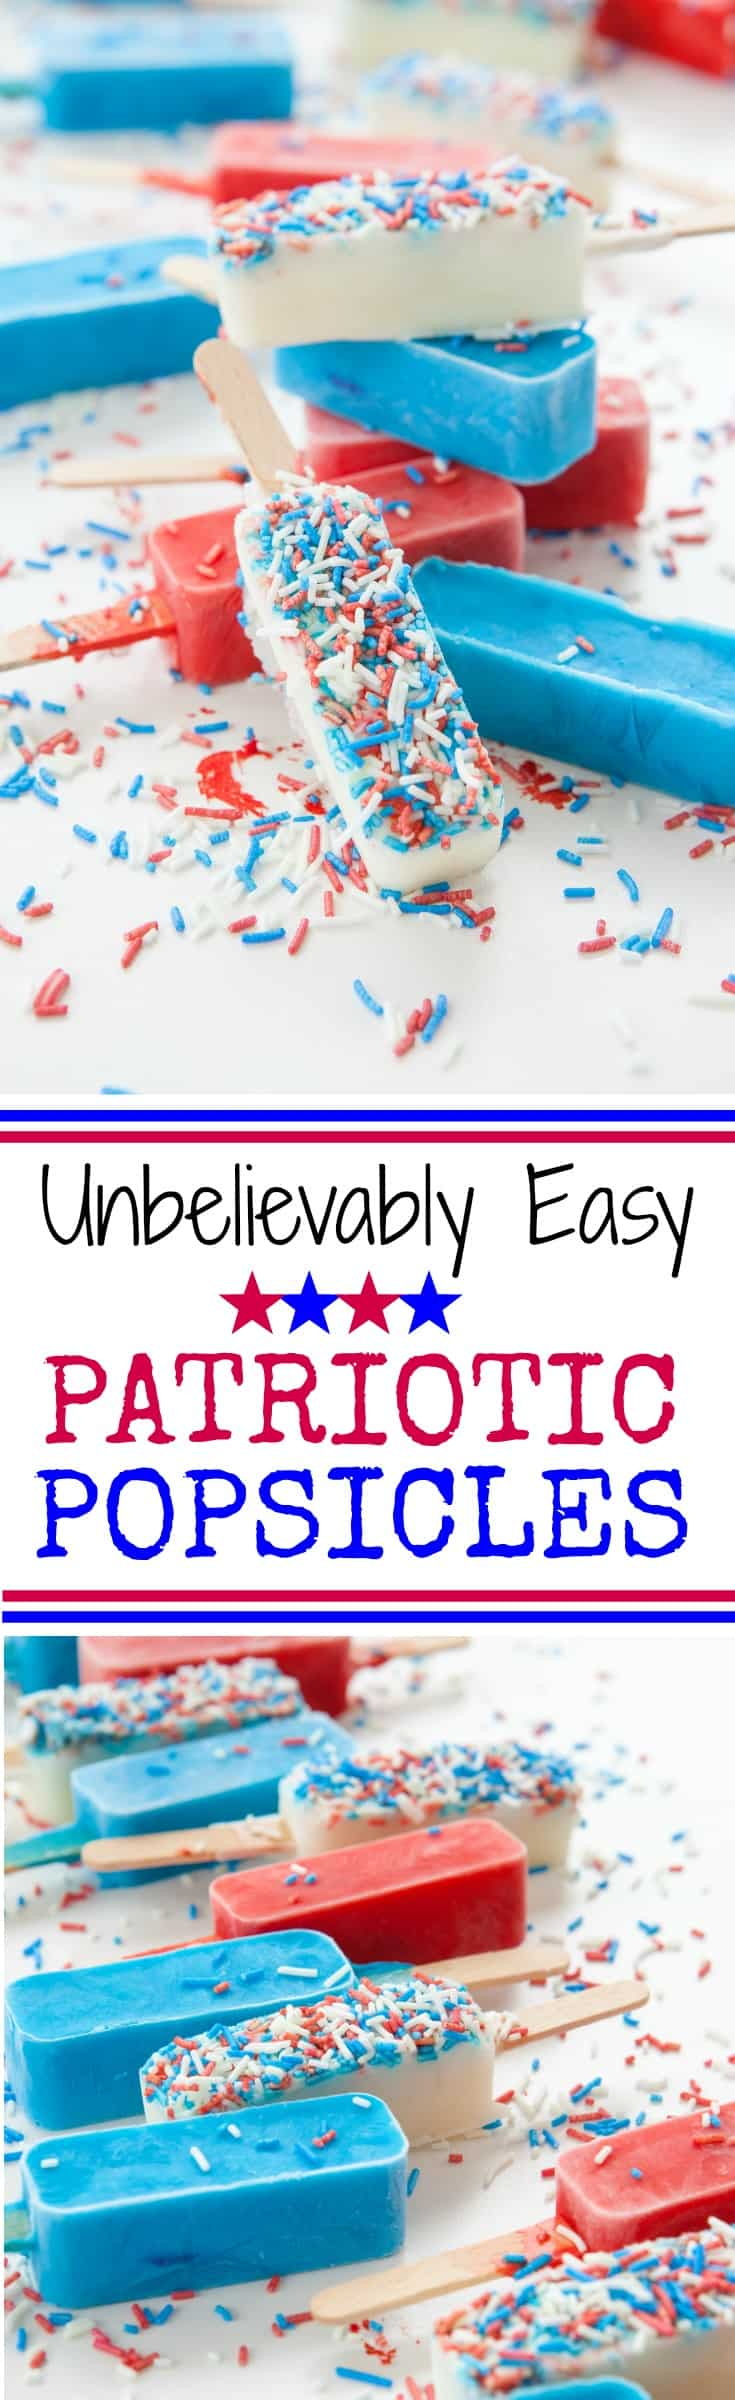 How to make red, white and blue patriotic popsicles for Memorial Day, Flag Day, July 4th or any time of year!